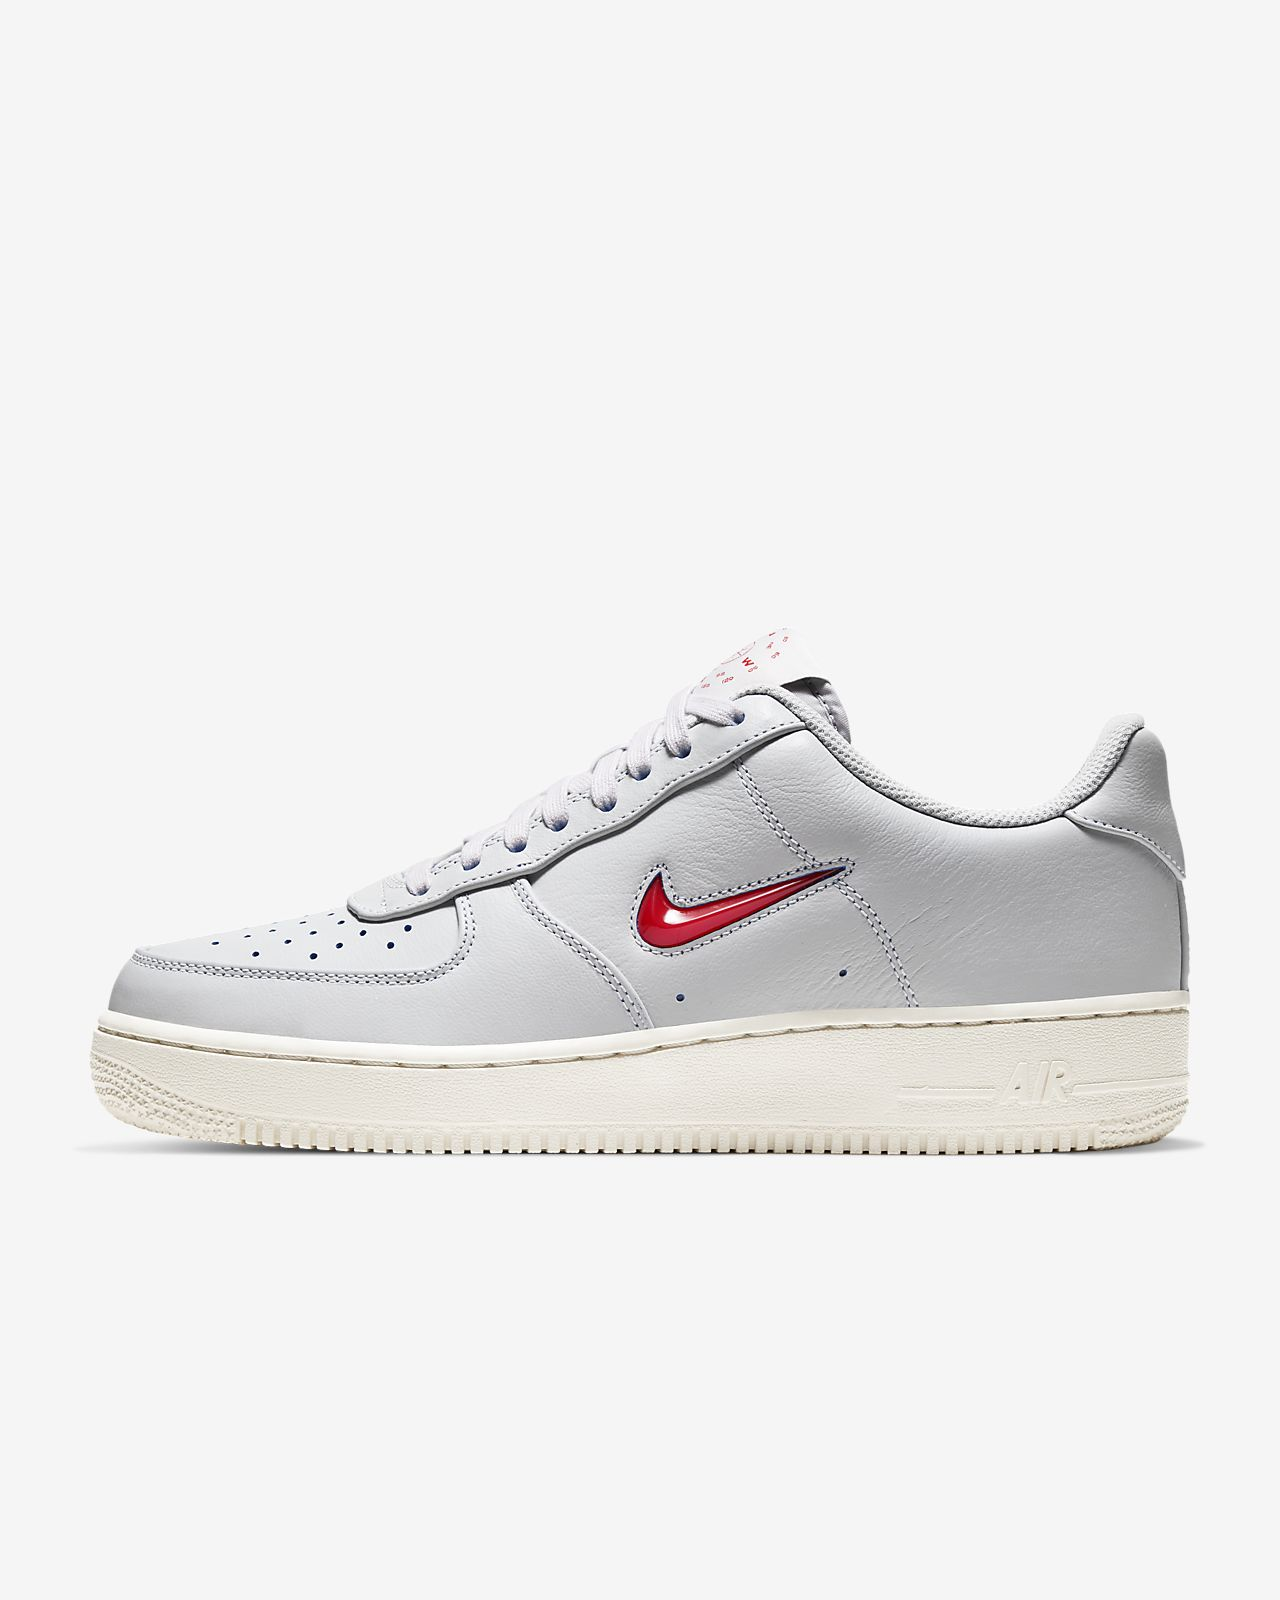 Nike Air Force 1 '07 PRM 男子运动鞋